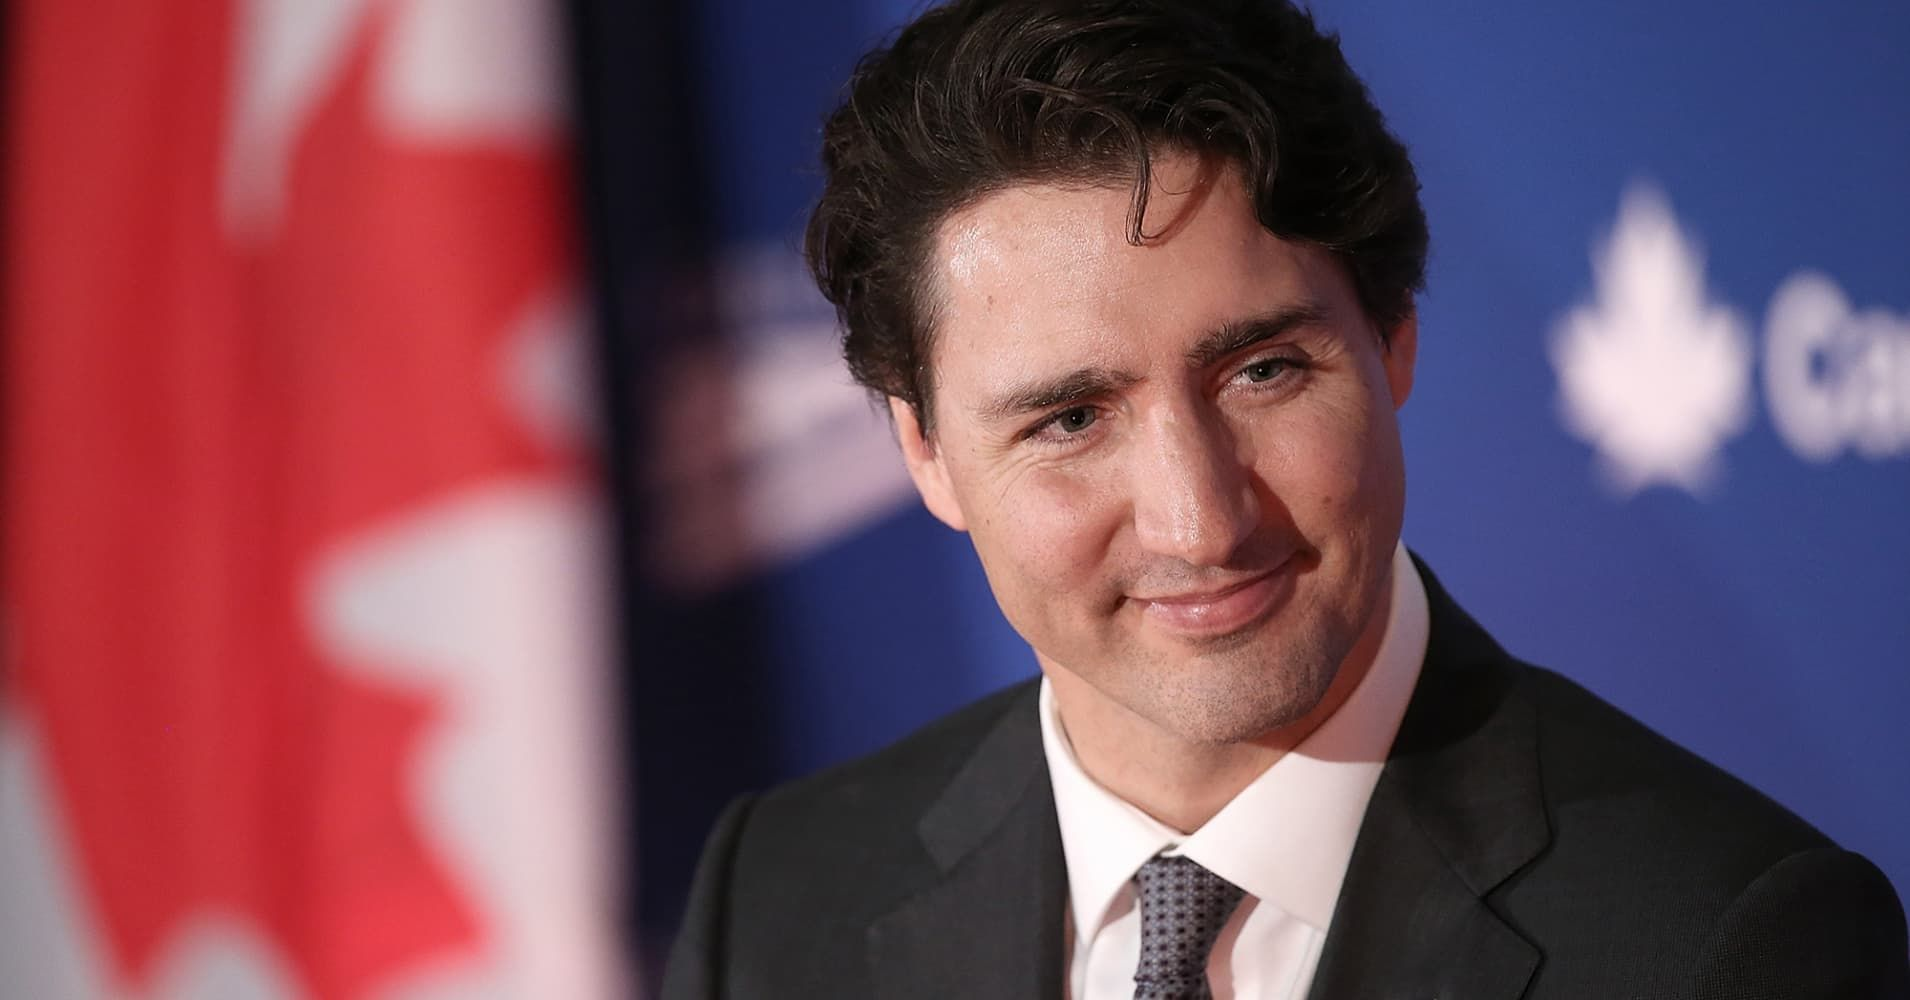 Trudeau's plan to lure Silicon Valley investors to Canada